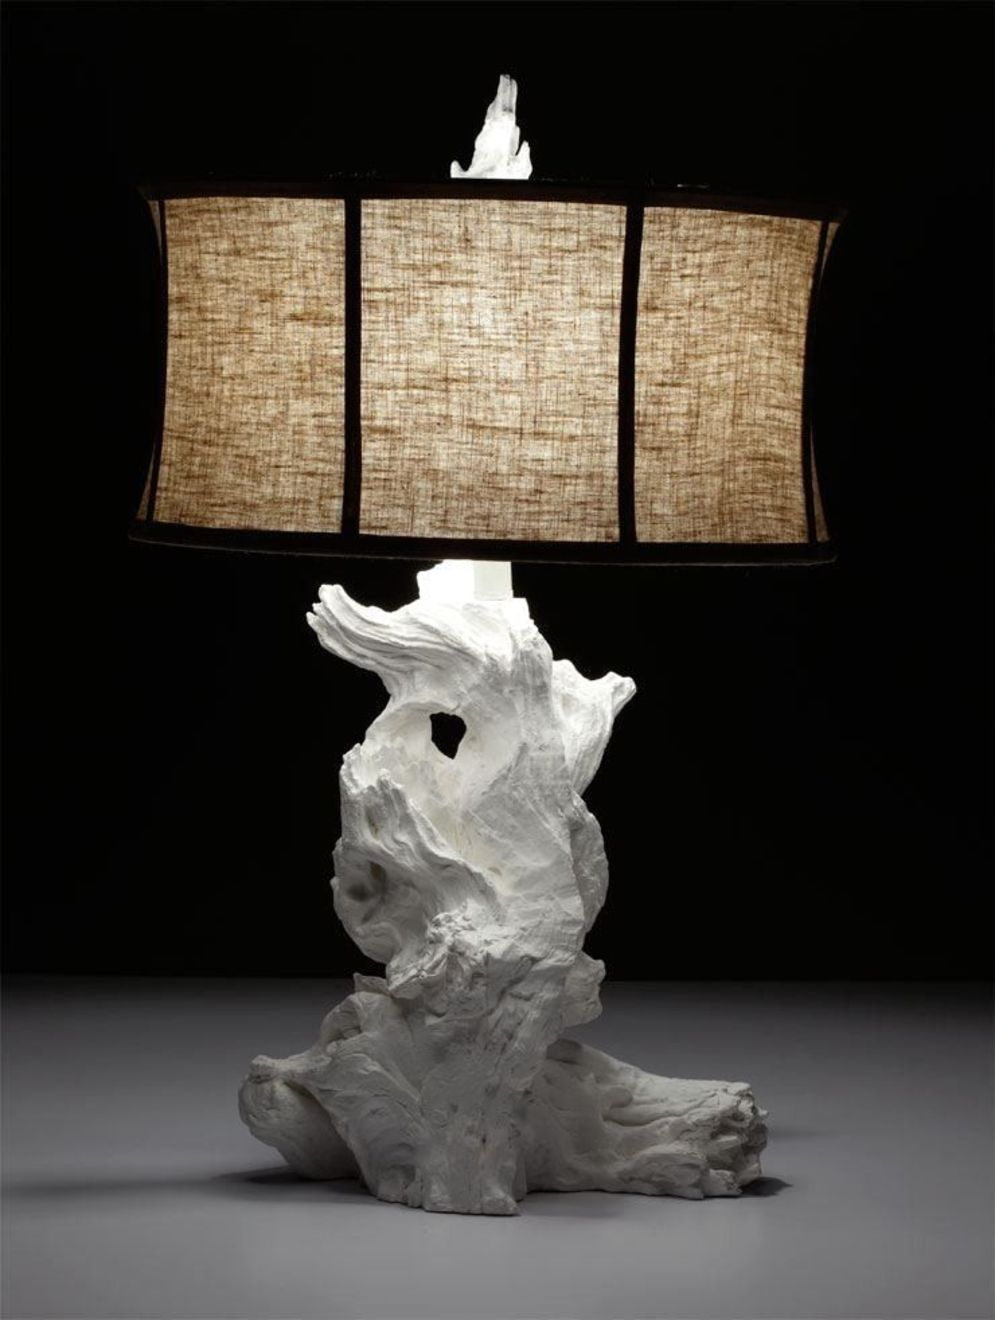 Awesome driftwood lamp stands giving authentic decoration in natural art style Image 4